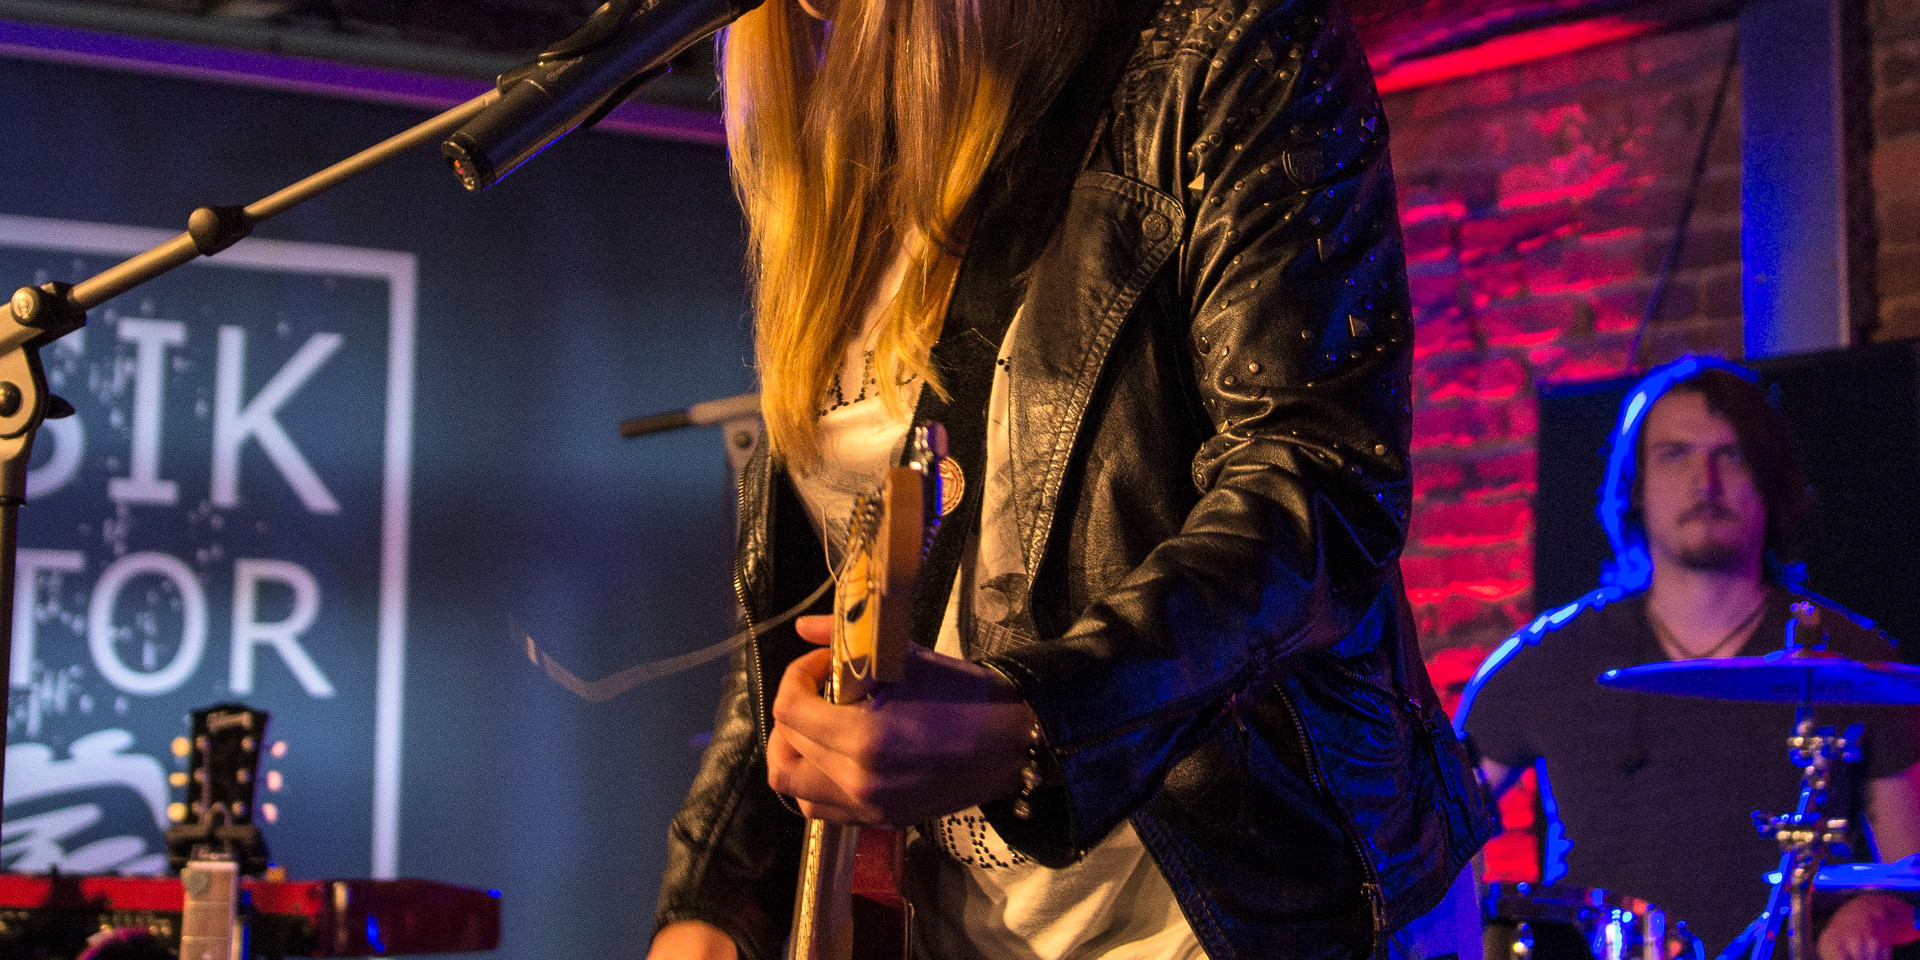 Ninna Attal Support at Schiller Herford 2015